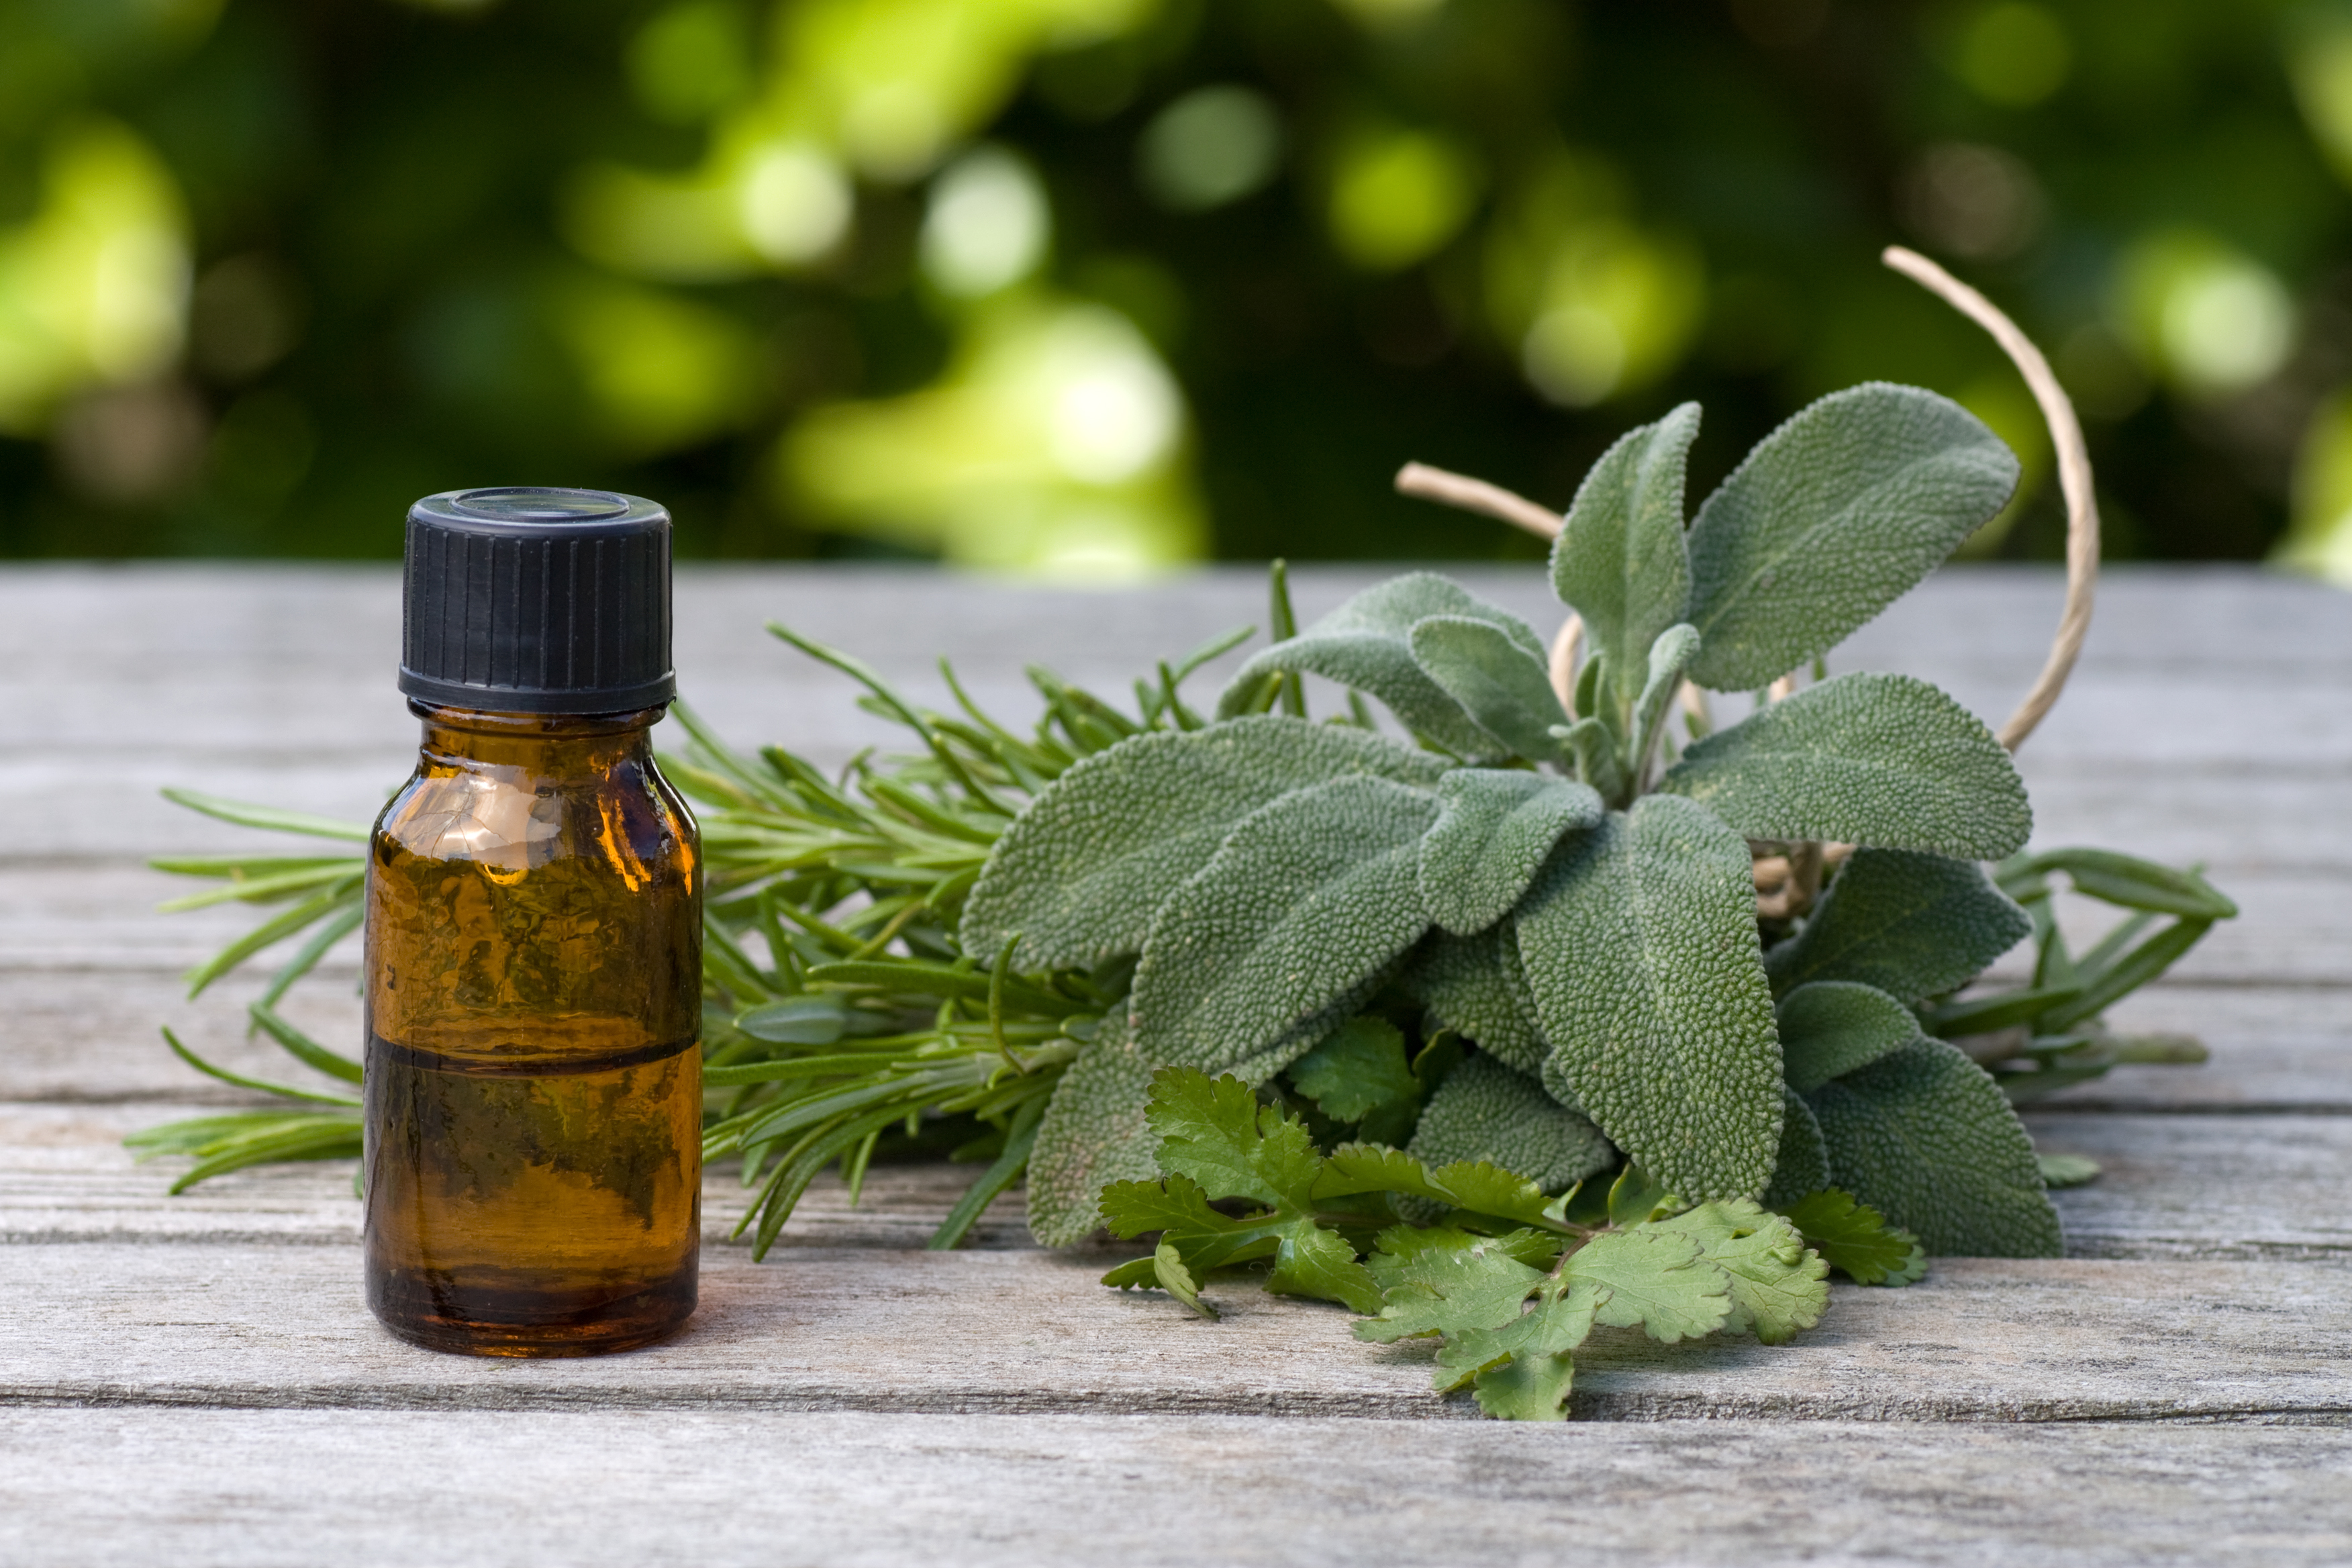 How to Take Staphysagria Homeopathic Remedy | LEAFtv